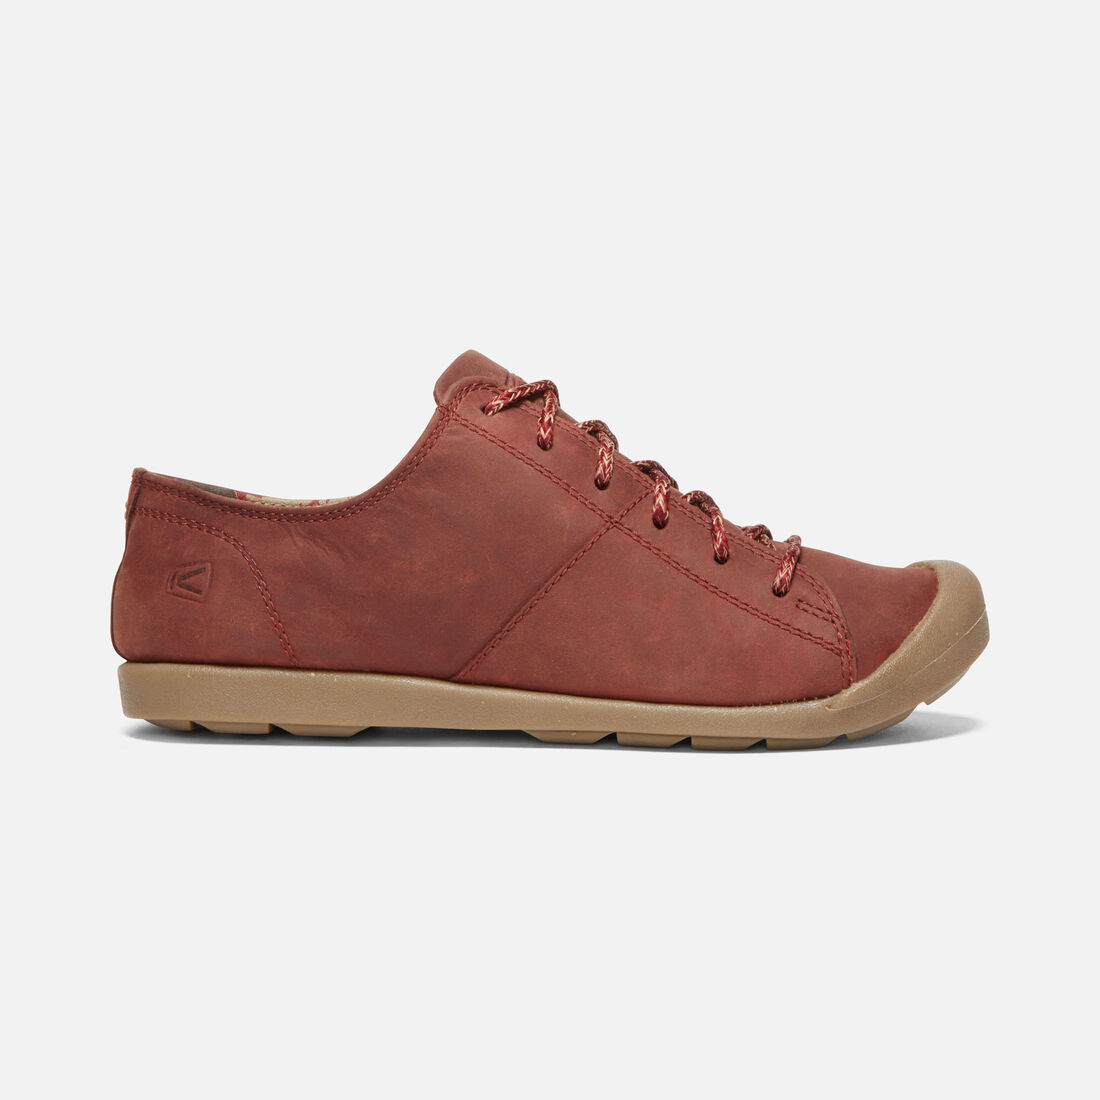 a38bf16be6f6 Women s Sienna Oxford in FIRED BRICK - large view.